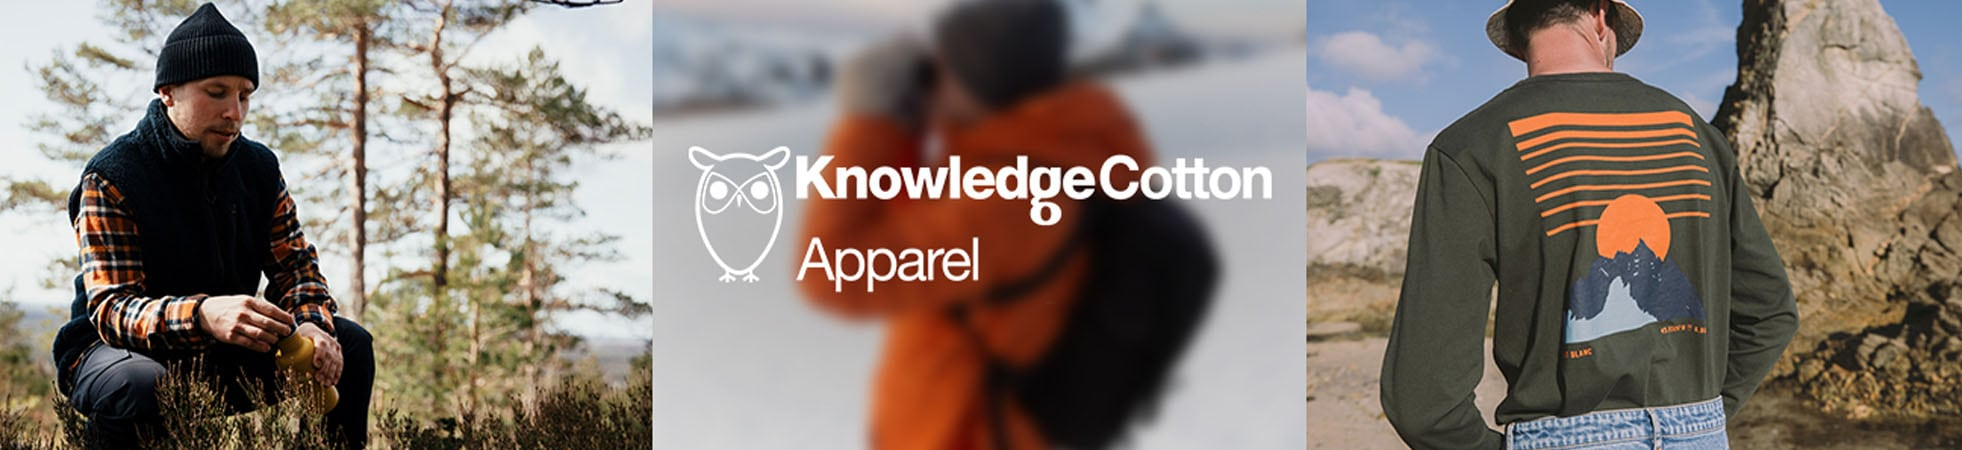 KnowledgeCotton Apparel Zwolle